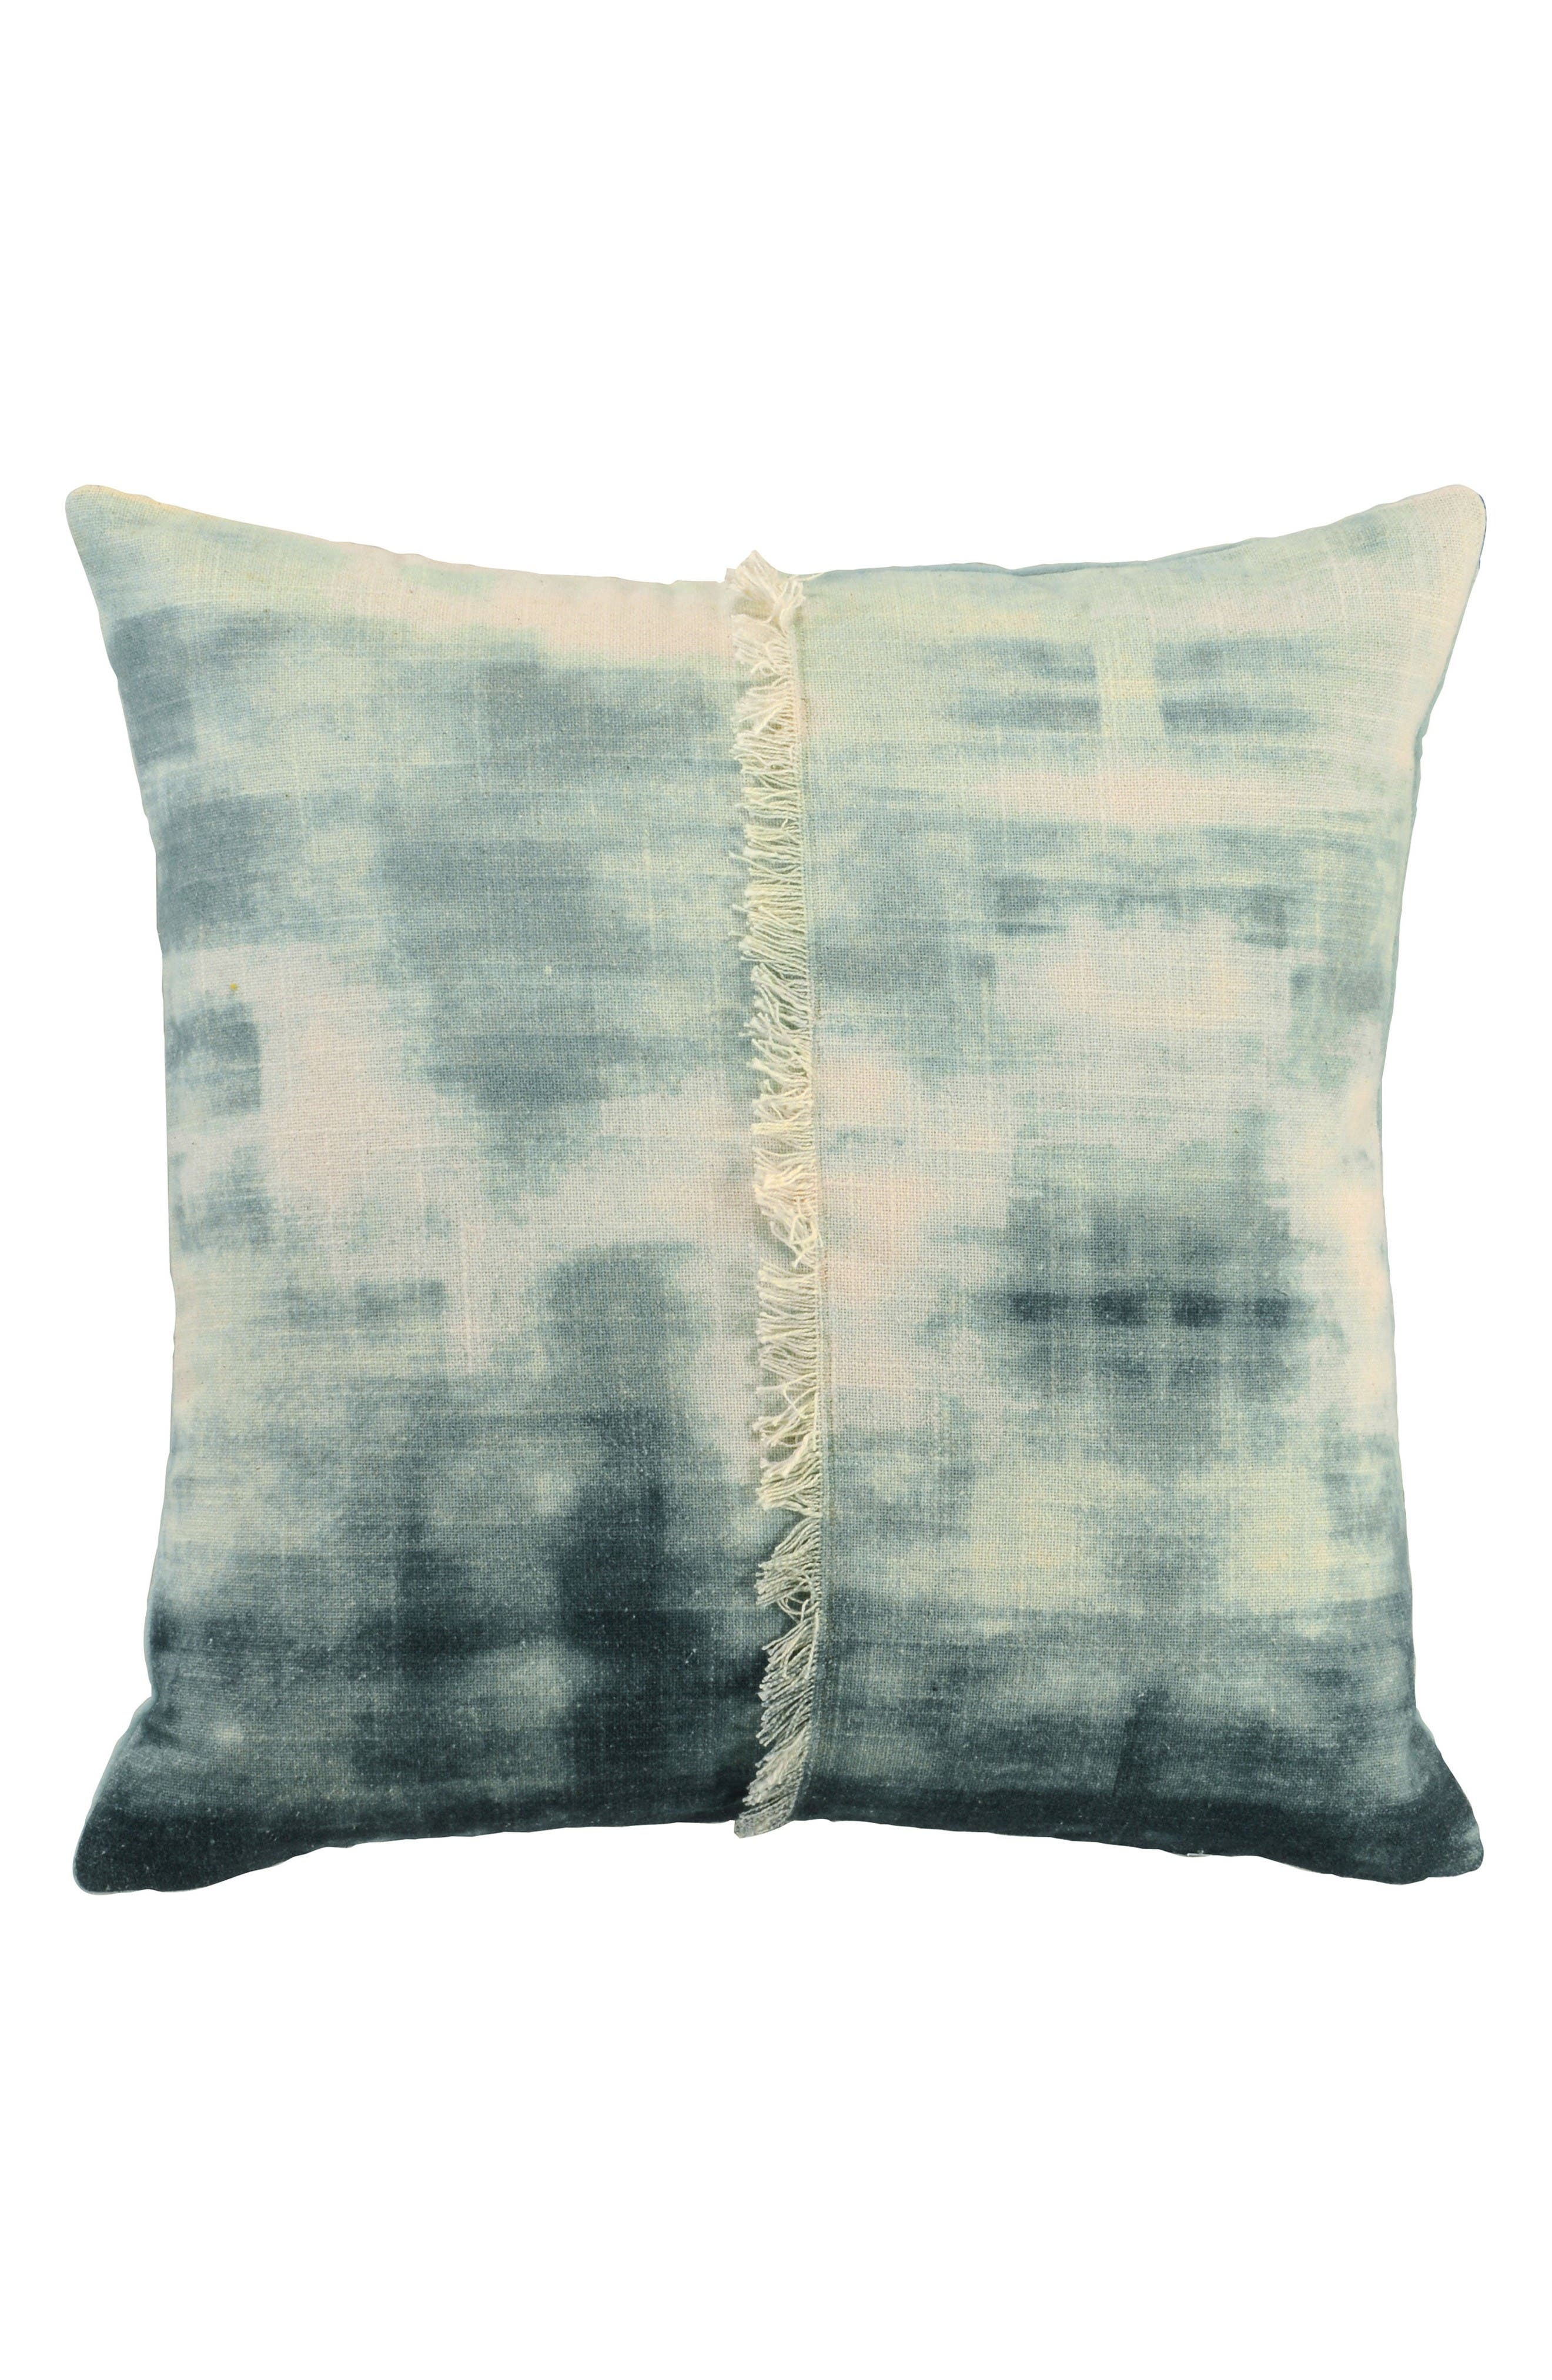 Kino Tidal Accent Pillow,                             Main thumbnail 1, color,                             Seaglass Blue